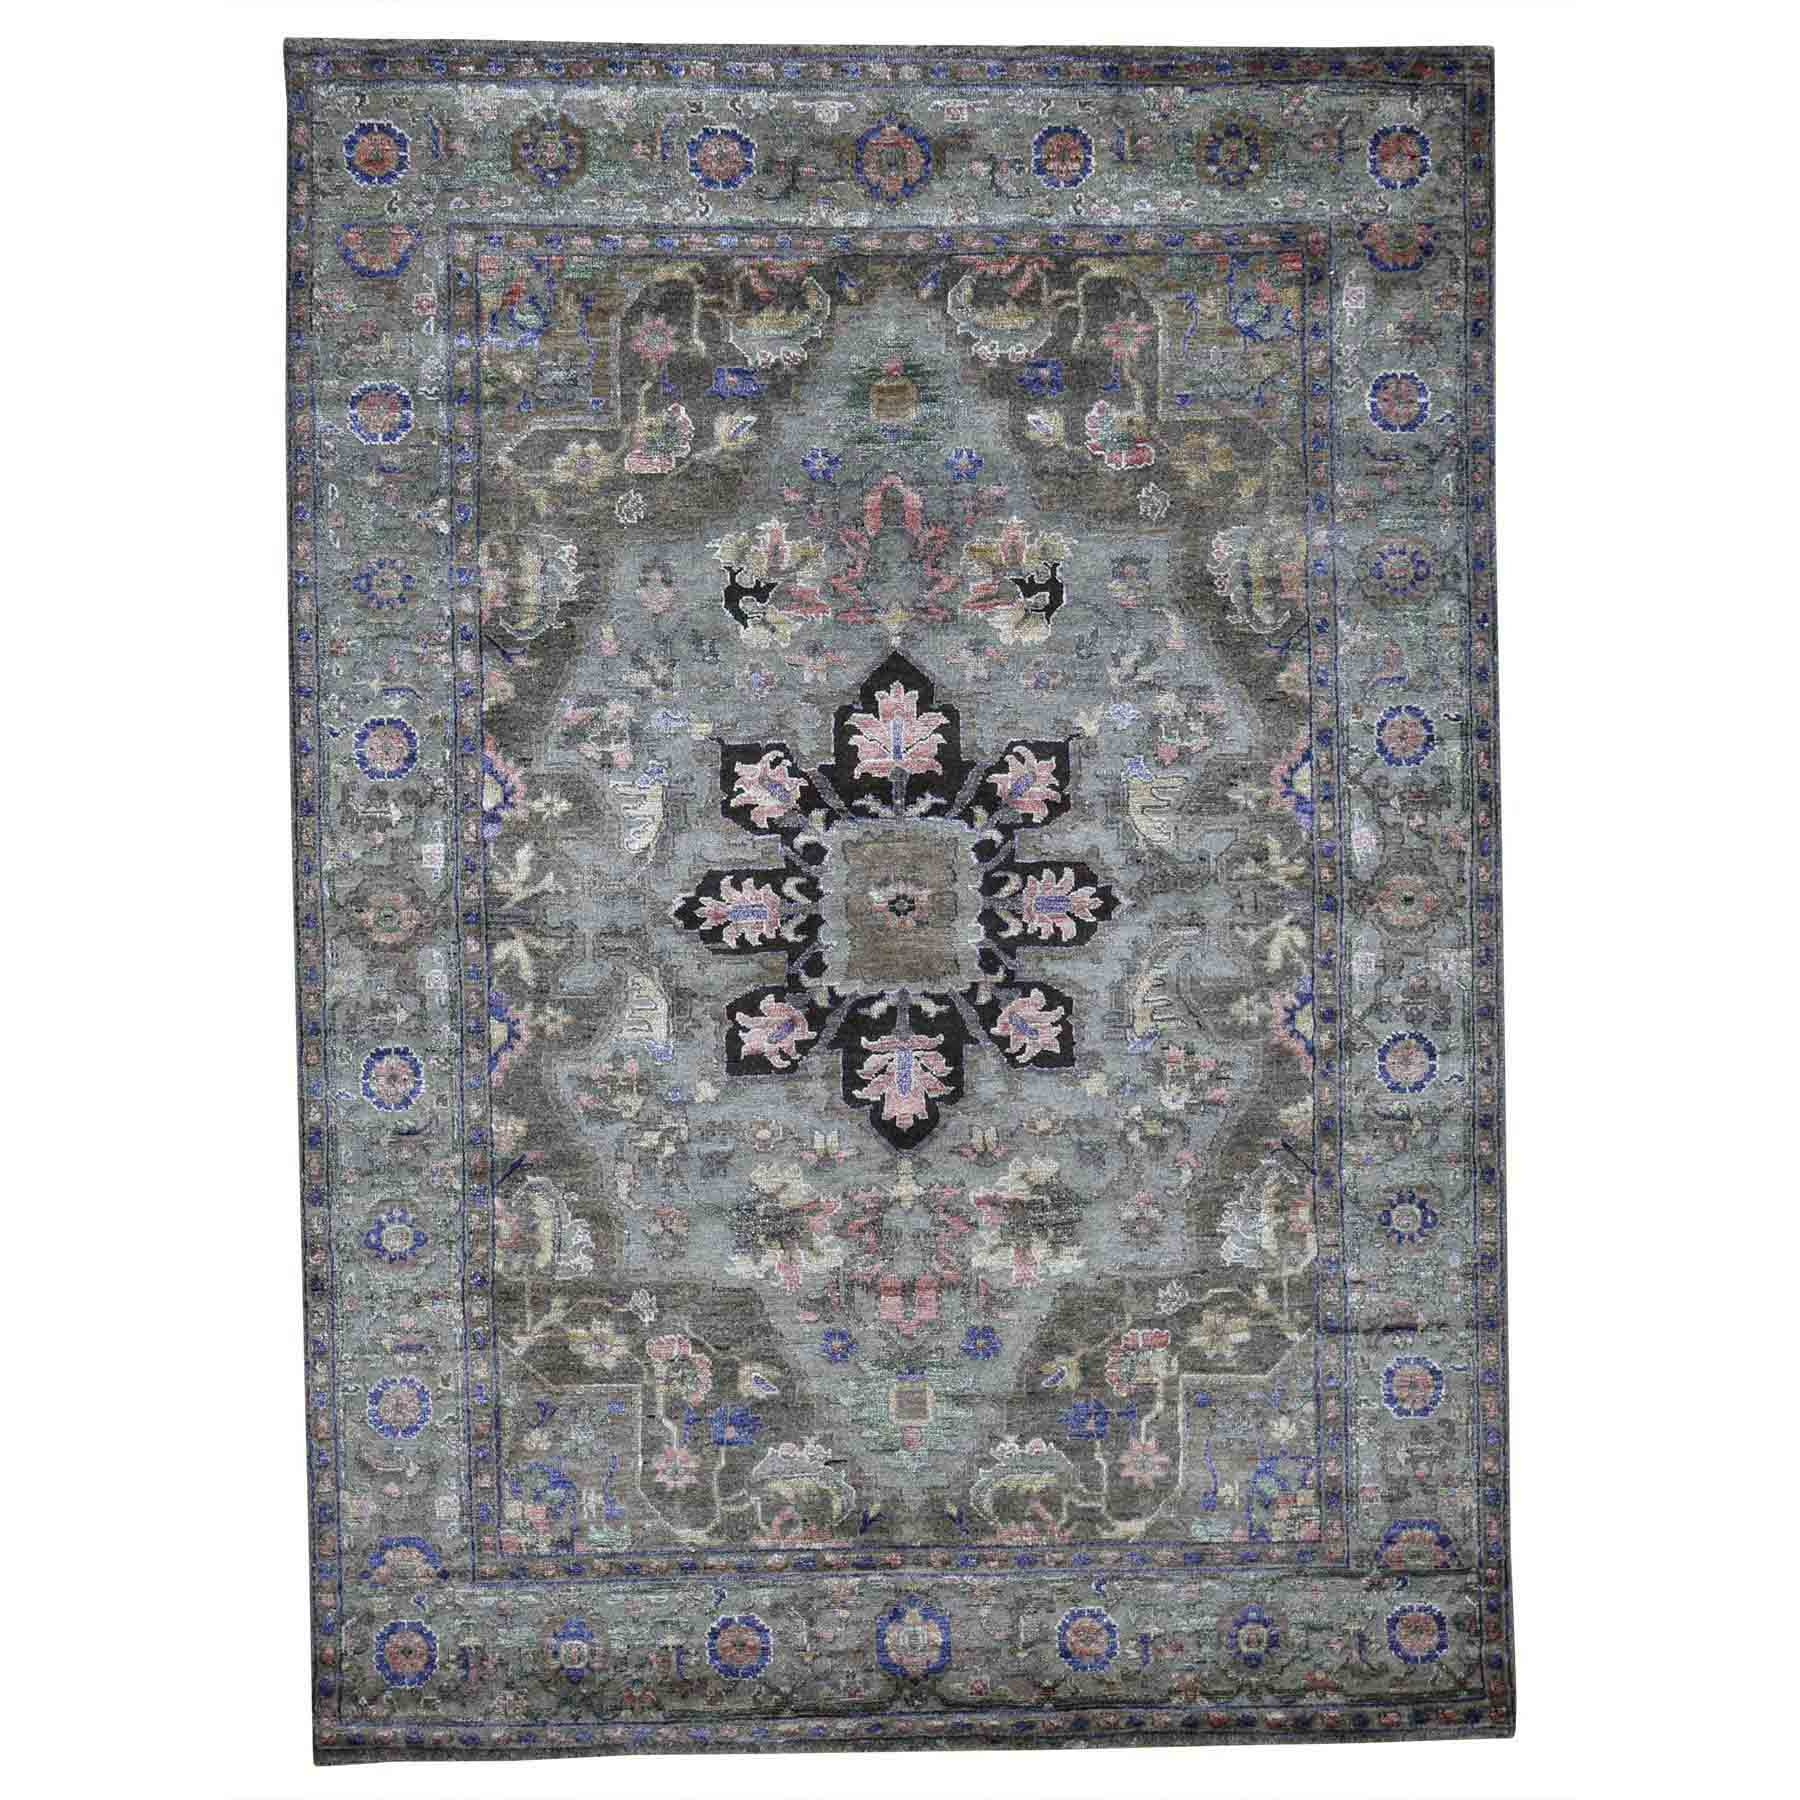 5'X7' Hand-Knotted Heriz Design Wool And Silk Plush Oriental Rug moad08be